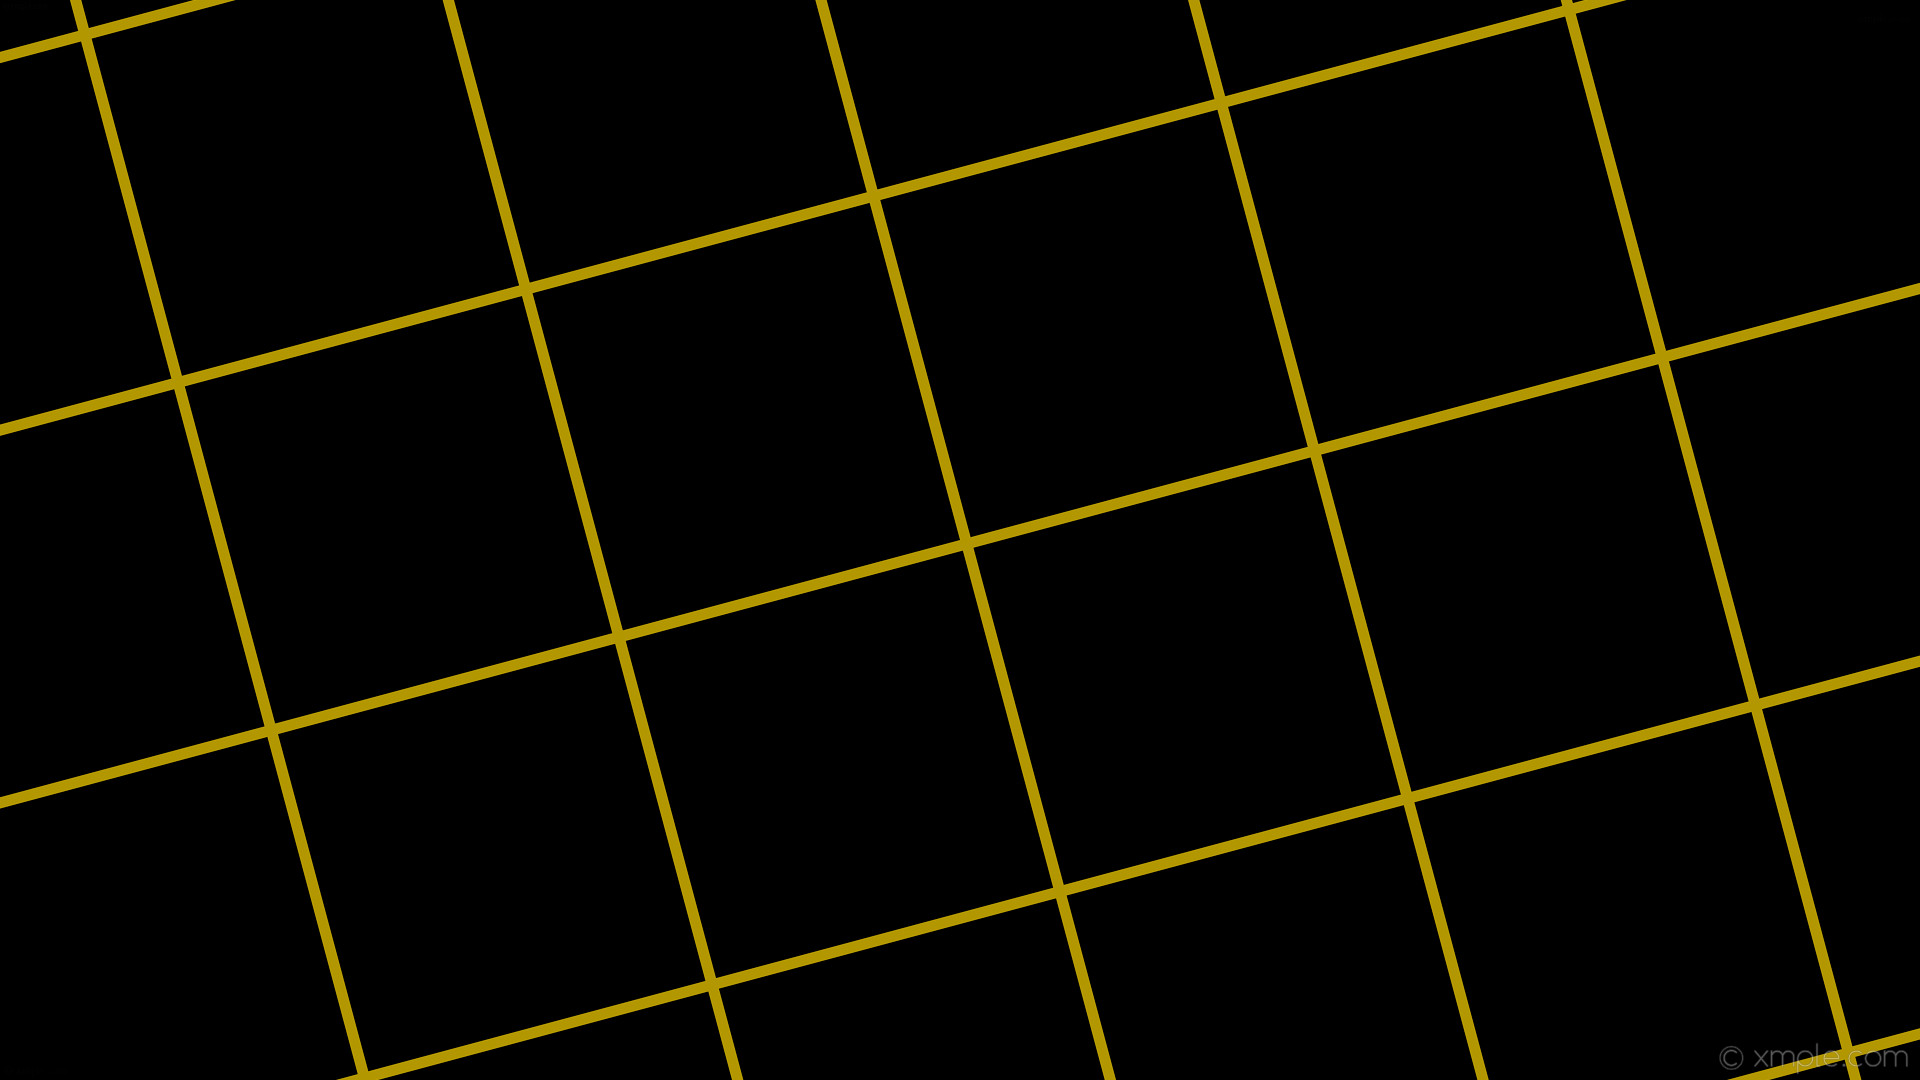 Yellow Aesthetic Computer Wallpaper Posted By John Anderson